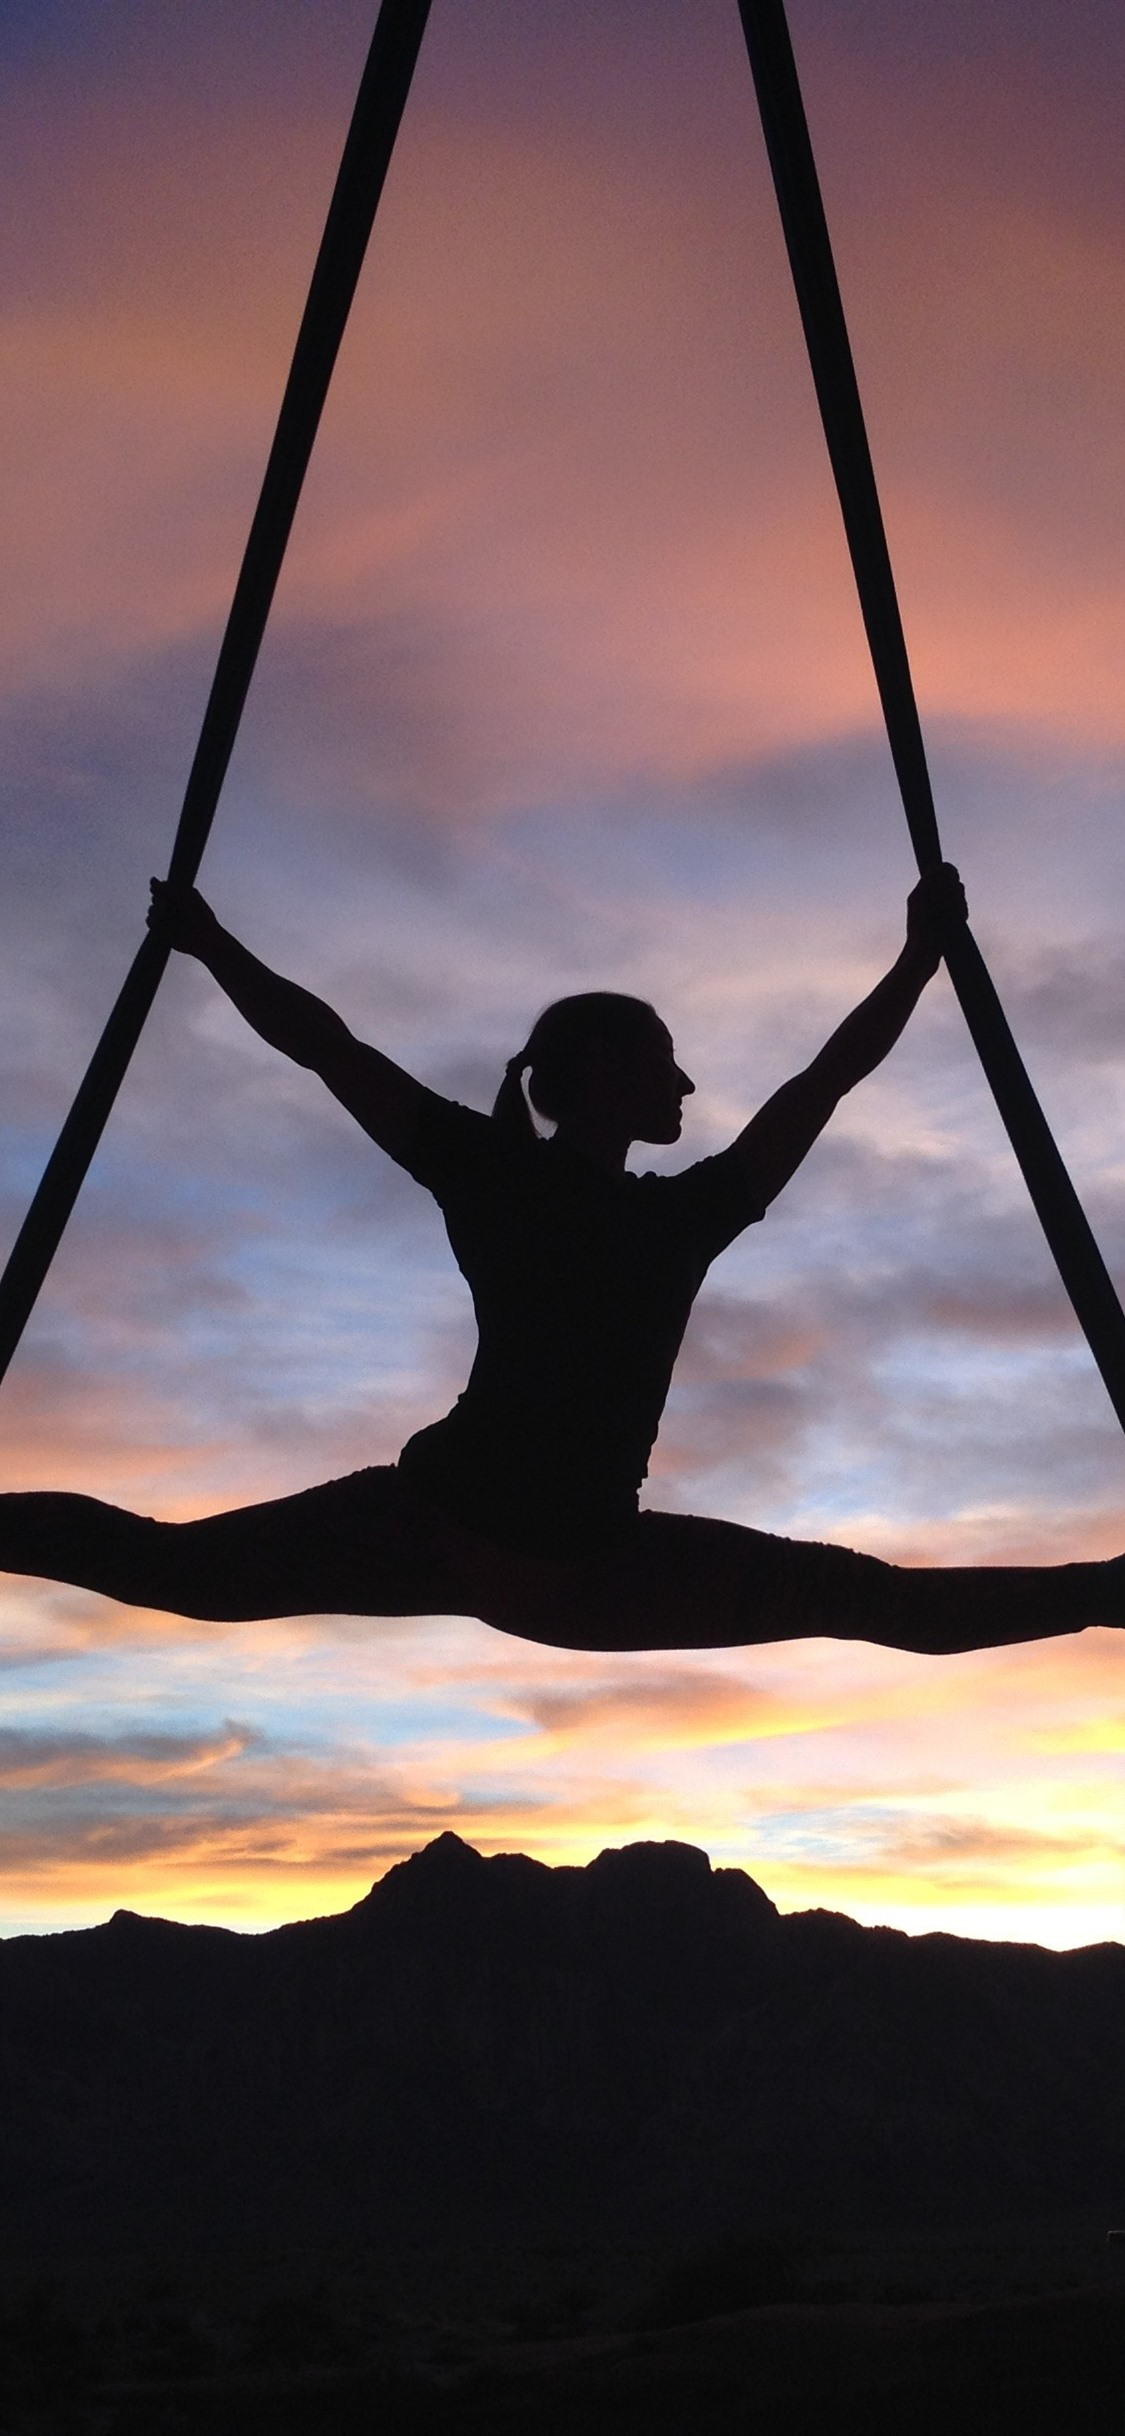 Girl Gymnast Silhouette Clouds Sunset 1125x2436 Iphone 11 Pro Xs X Wallpaper Background Picture Image